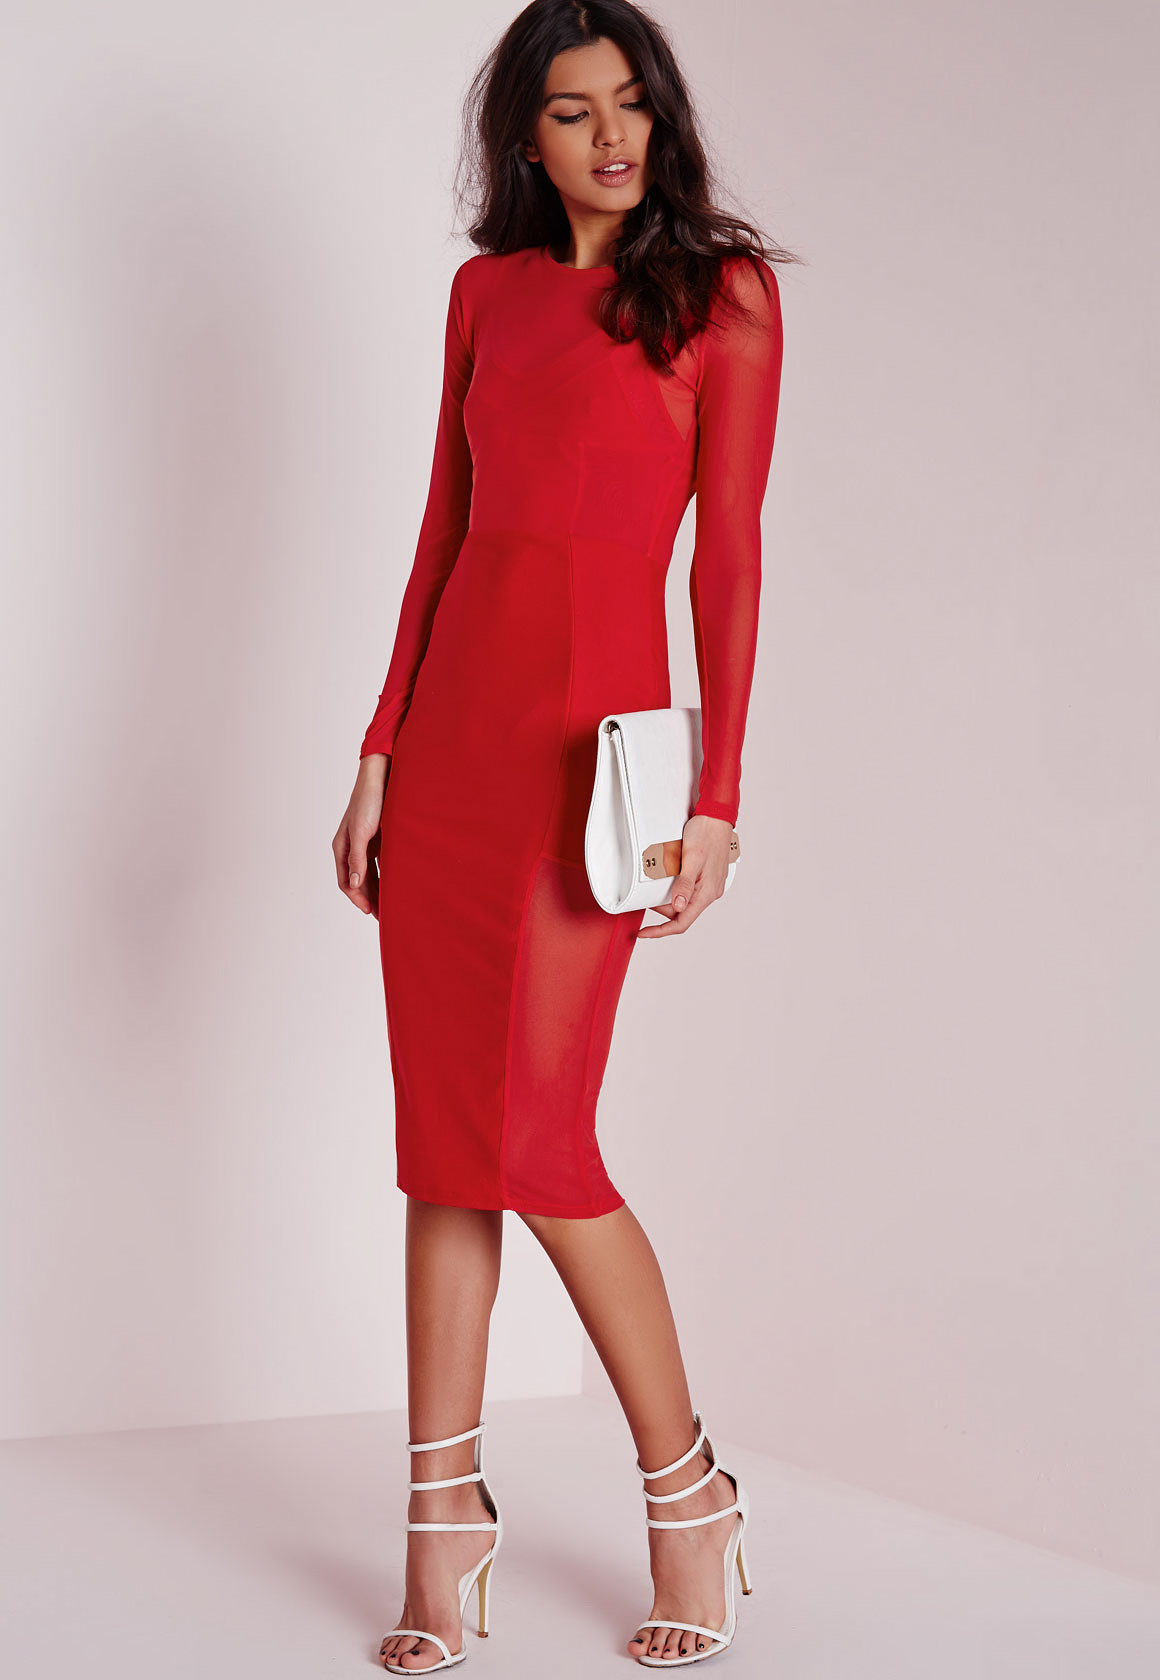 Look - Sleeved Long red dress pictures video